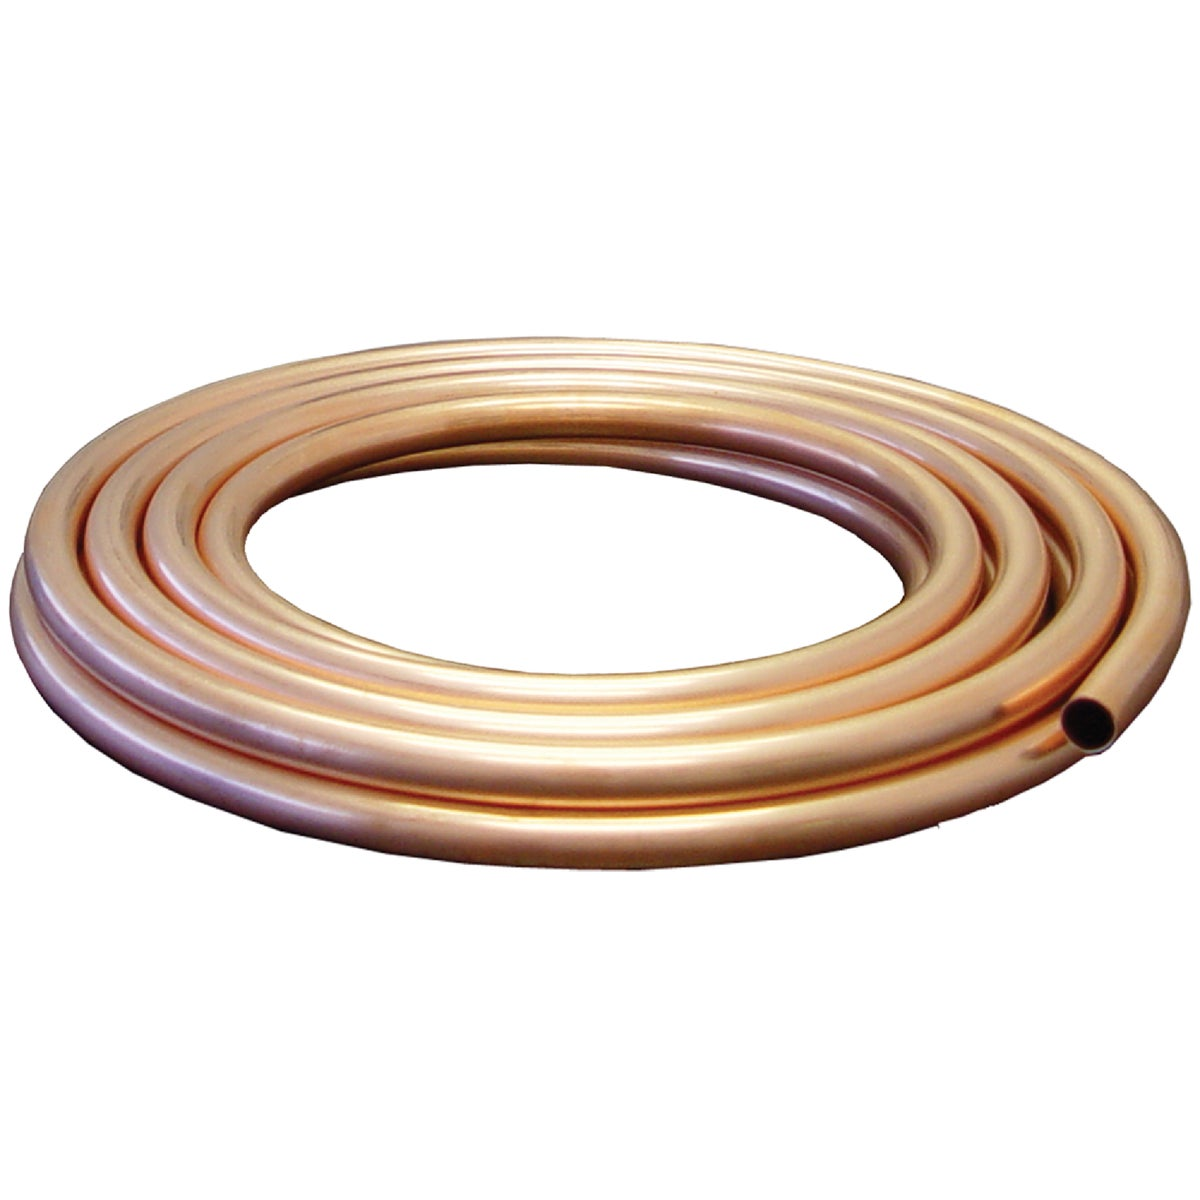 "1/2""ODX15'UG COPPER COIL - UT08015 by Mueller B K"